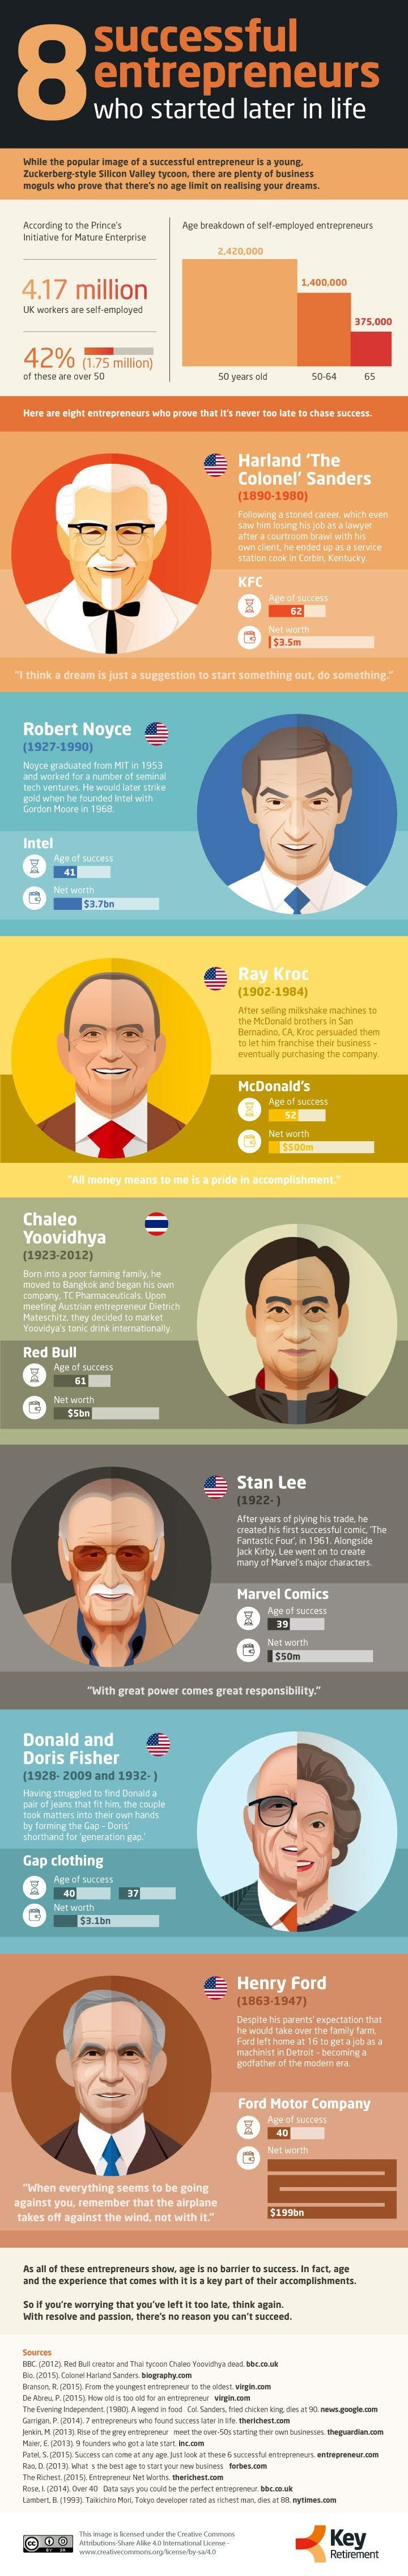 It's Never Too Late! 8 Successful Entrepreneurs Who Started Later in Life - infographic